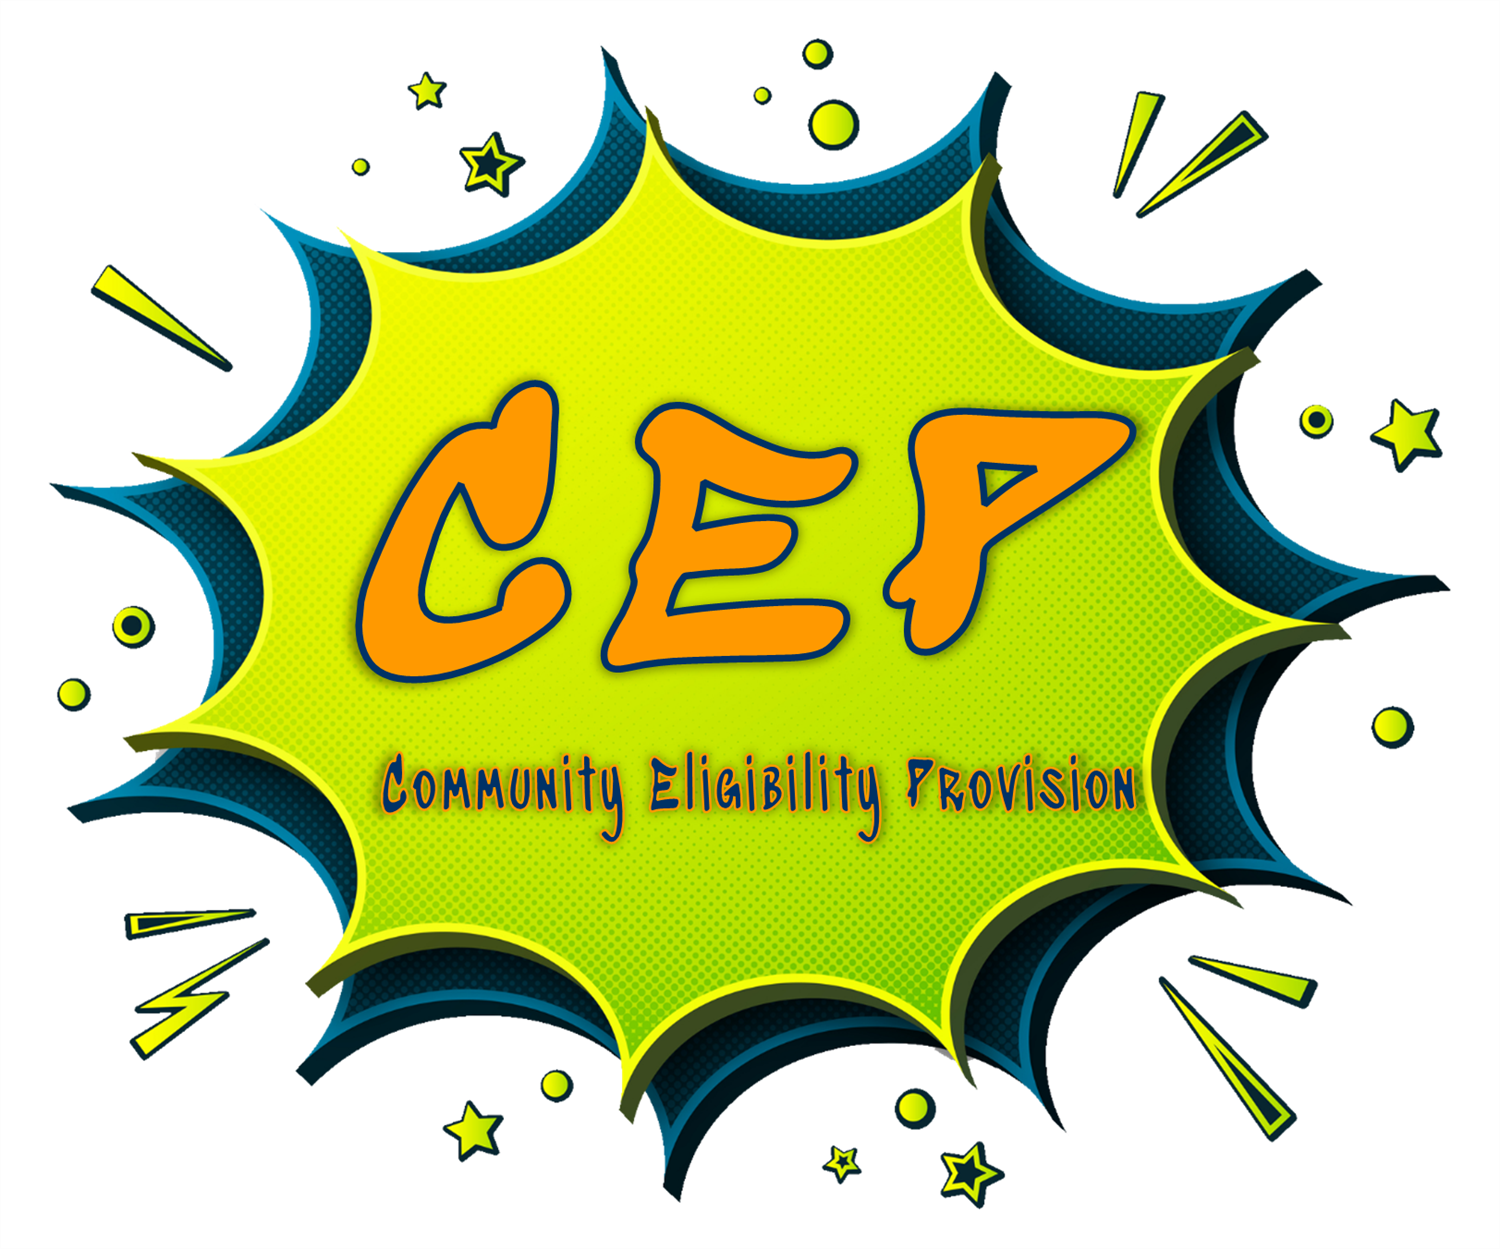 54 Schools Participating Community Eligibility Provision (CEP) - Free School Breakfast and Lunch For Every Student Everyday Day!